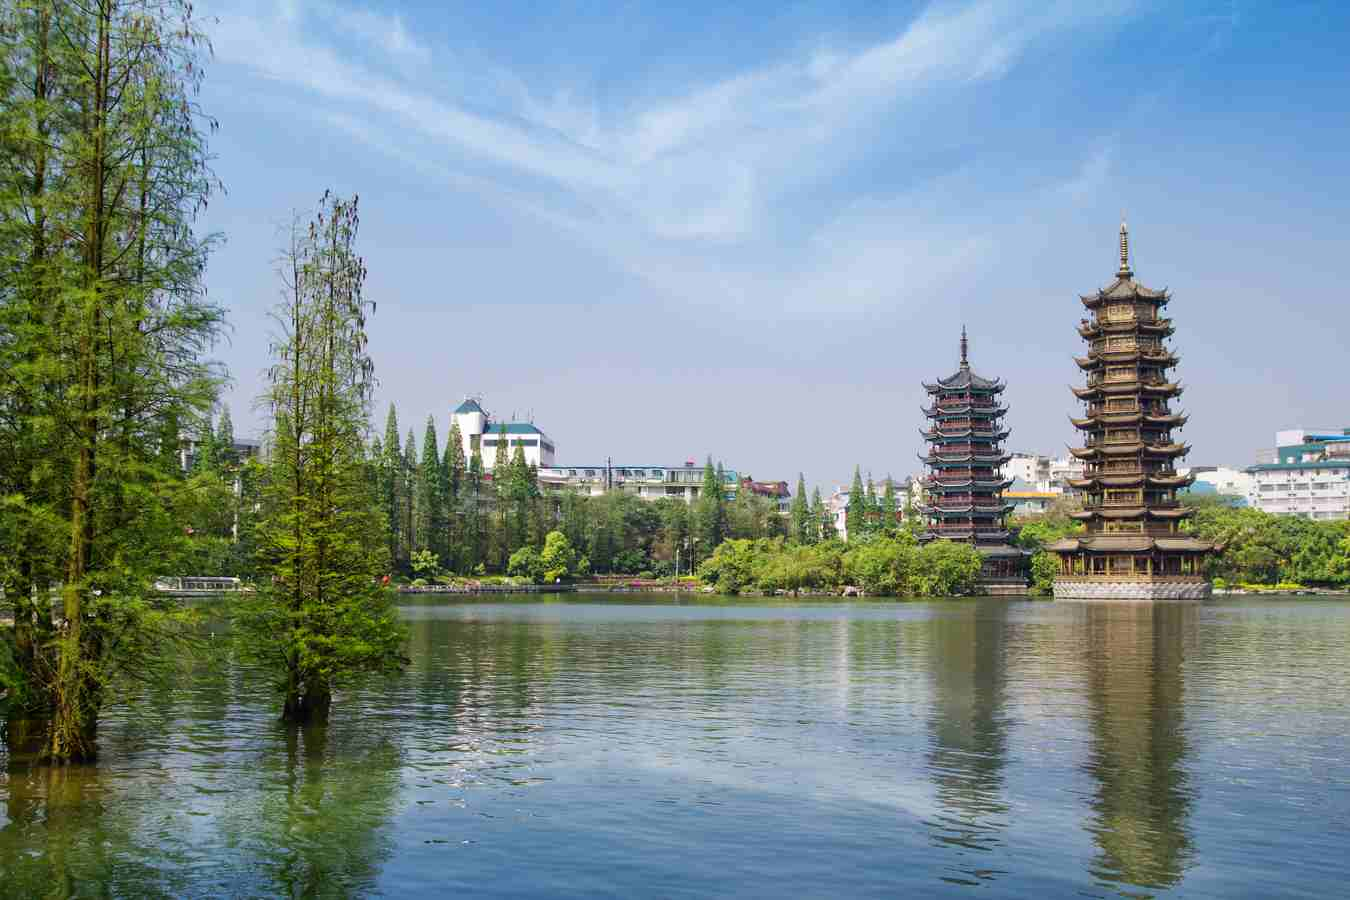 lijiang singles Our carefully complied china travel guide provides you with  kunming-dali-lijiang-shangri-la  wonders of karst landform which is the highest single-body.